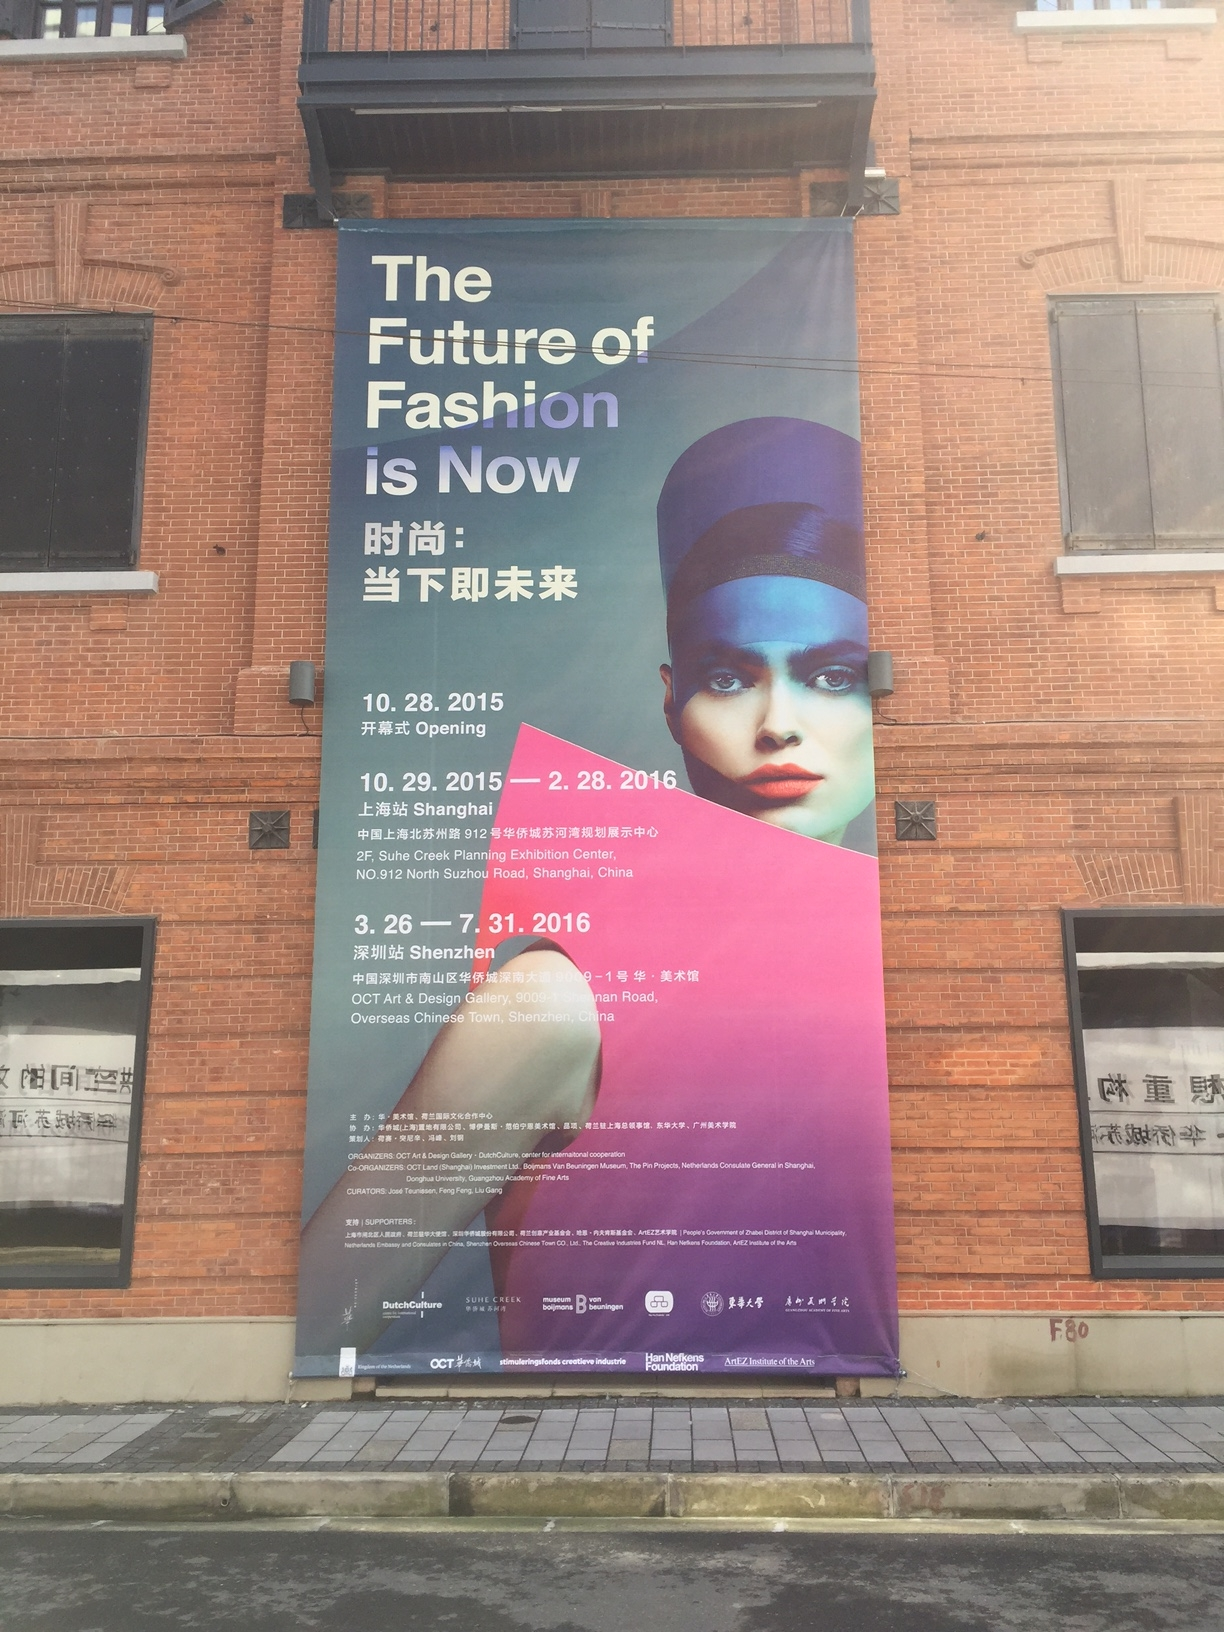 Dutch Minister of Foreign Affairs Bert Koenders will open The Future of Fashion is Now in Shanghai.